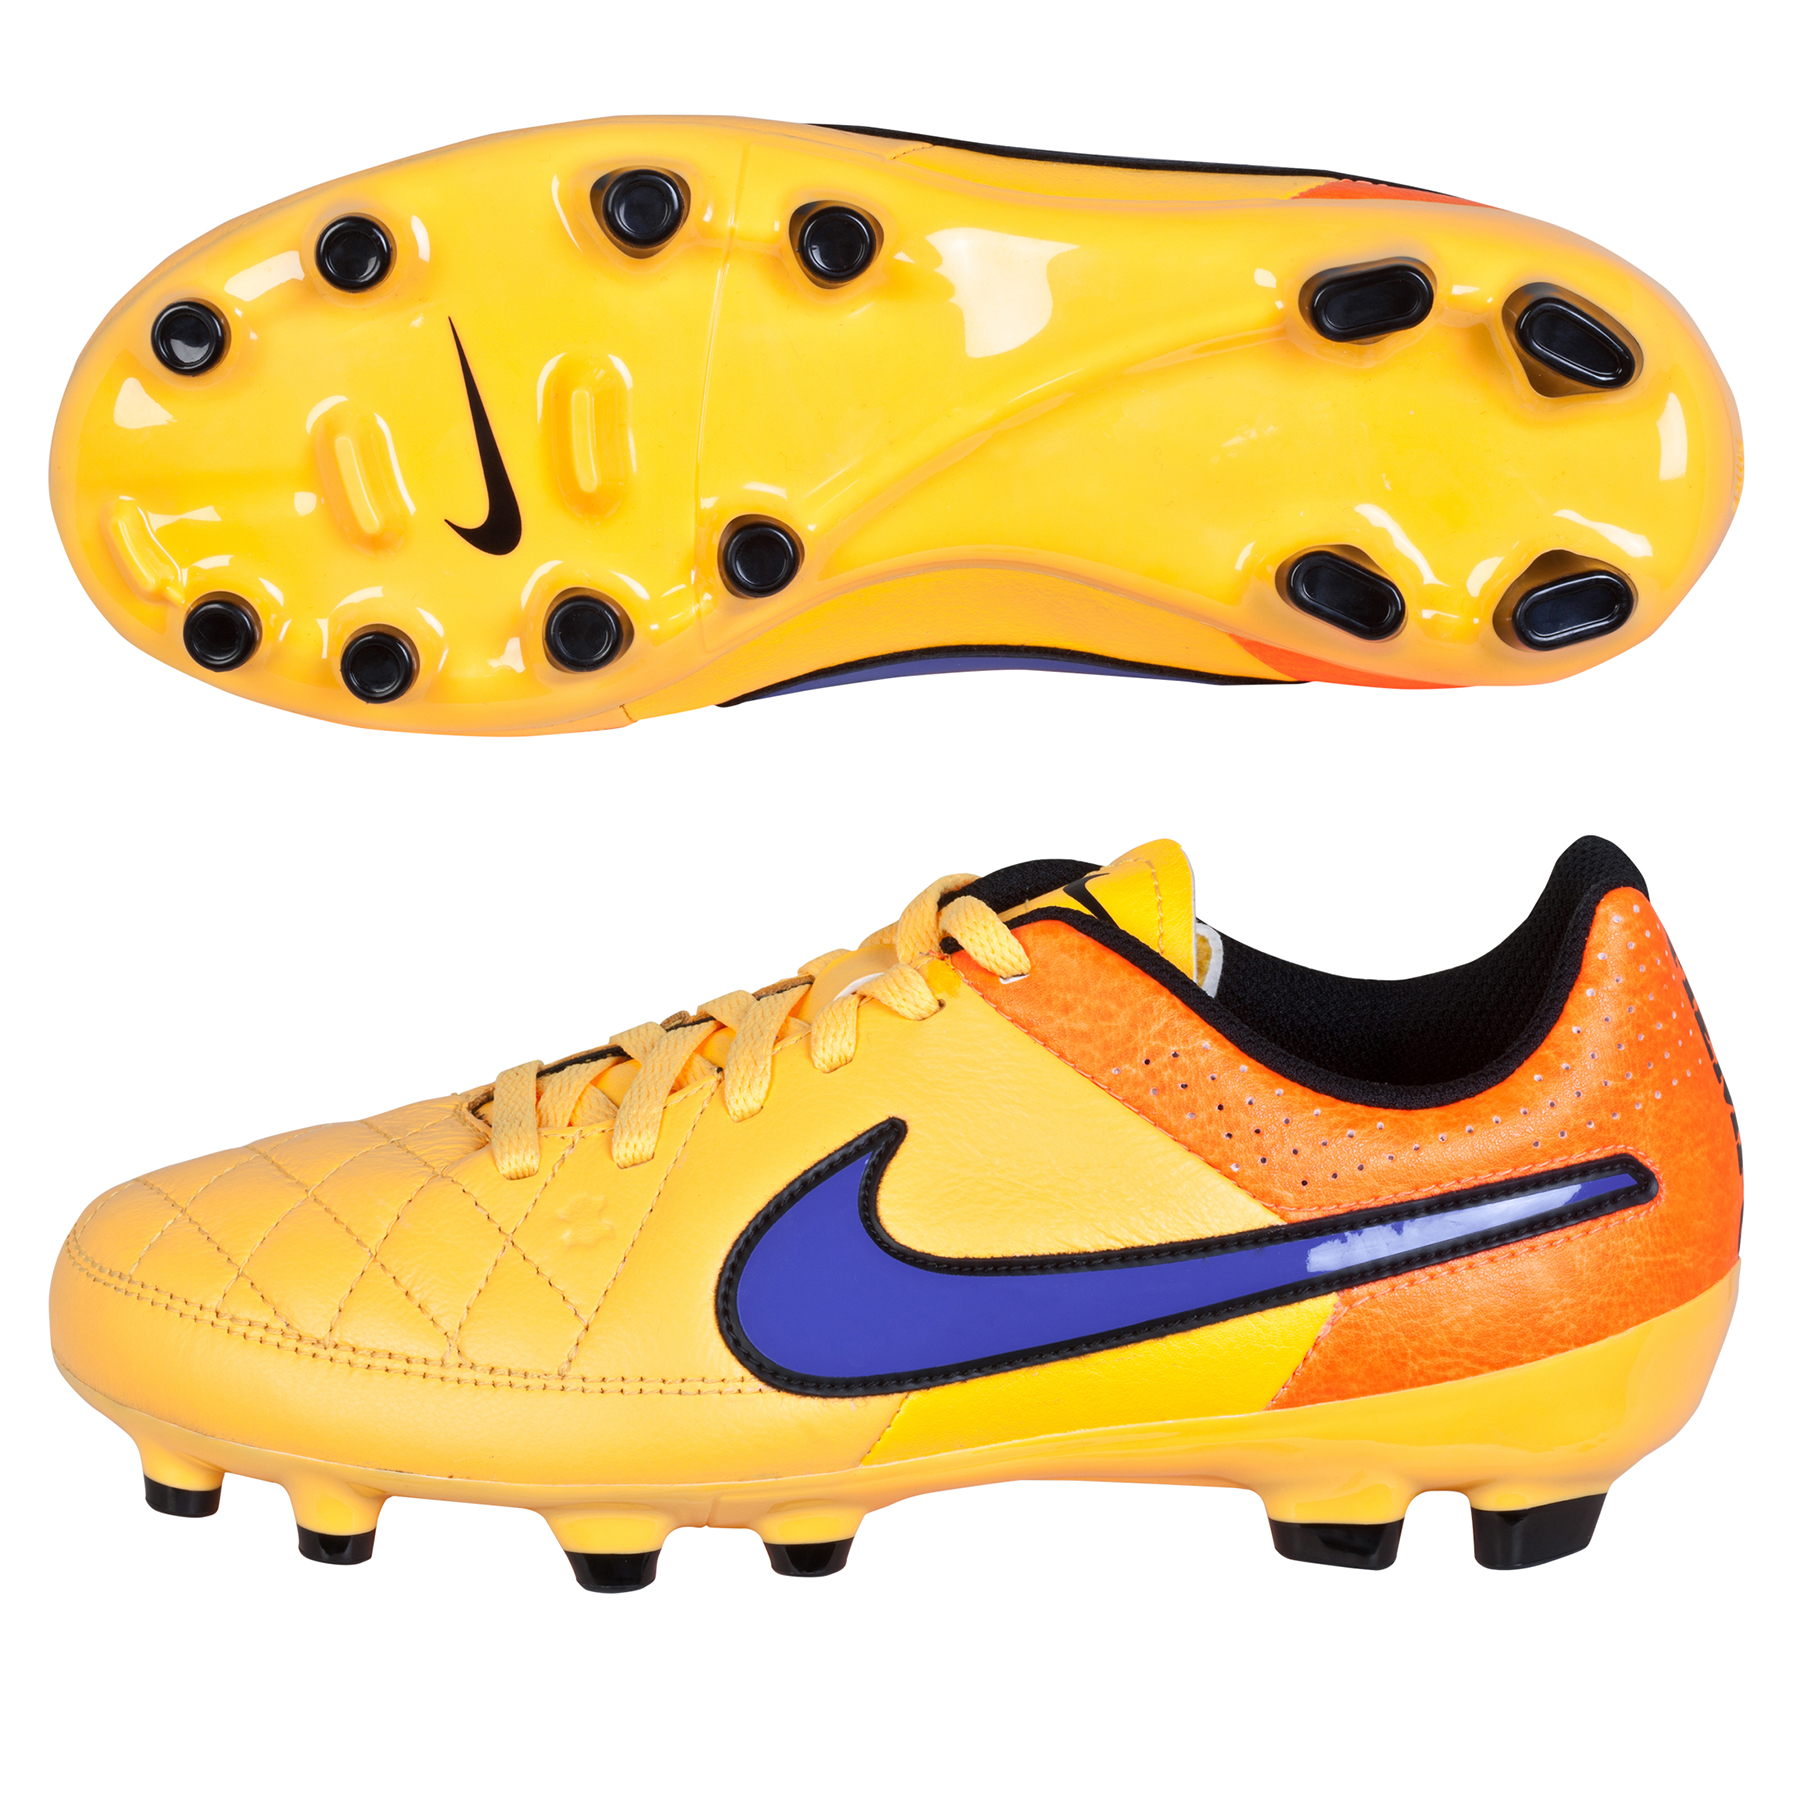 Nike Tiempo Genio Leather Firm Ground Football Boots  Kids Orange